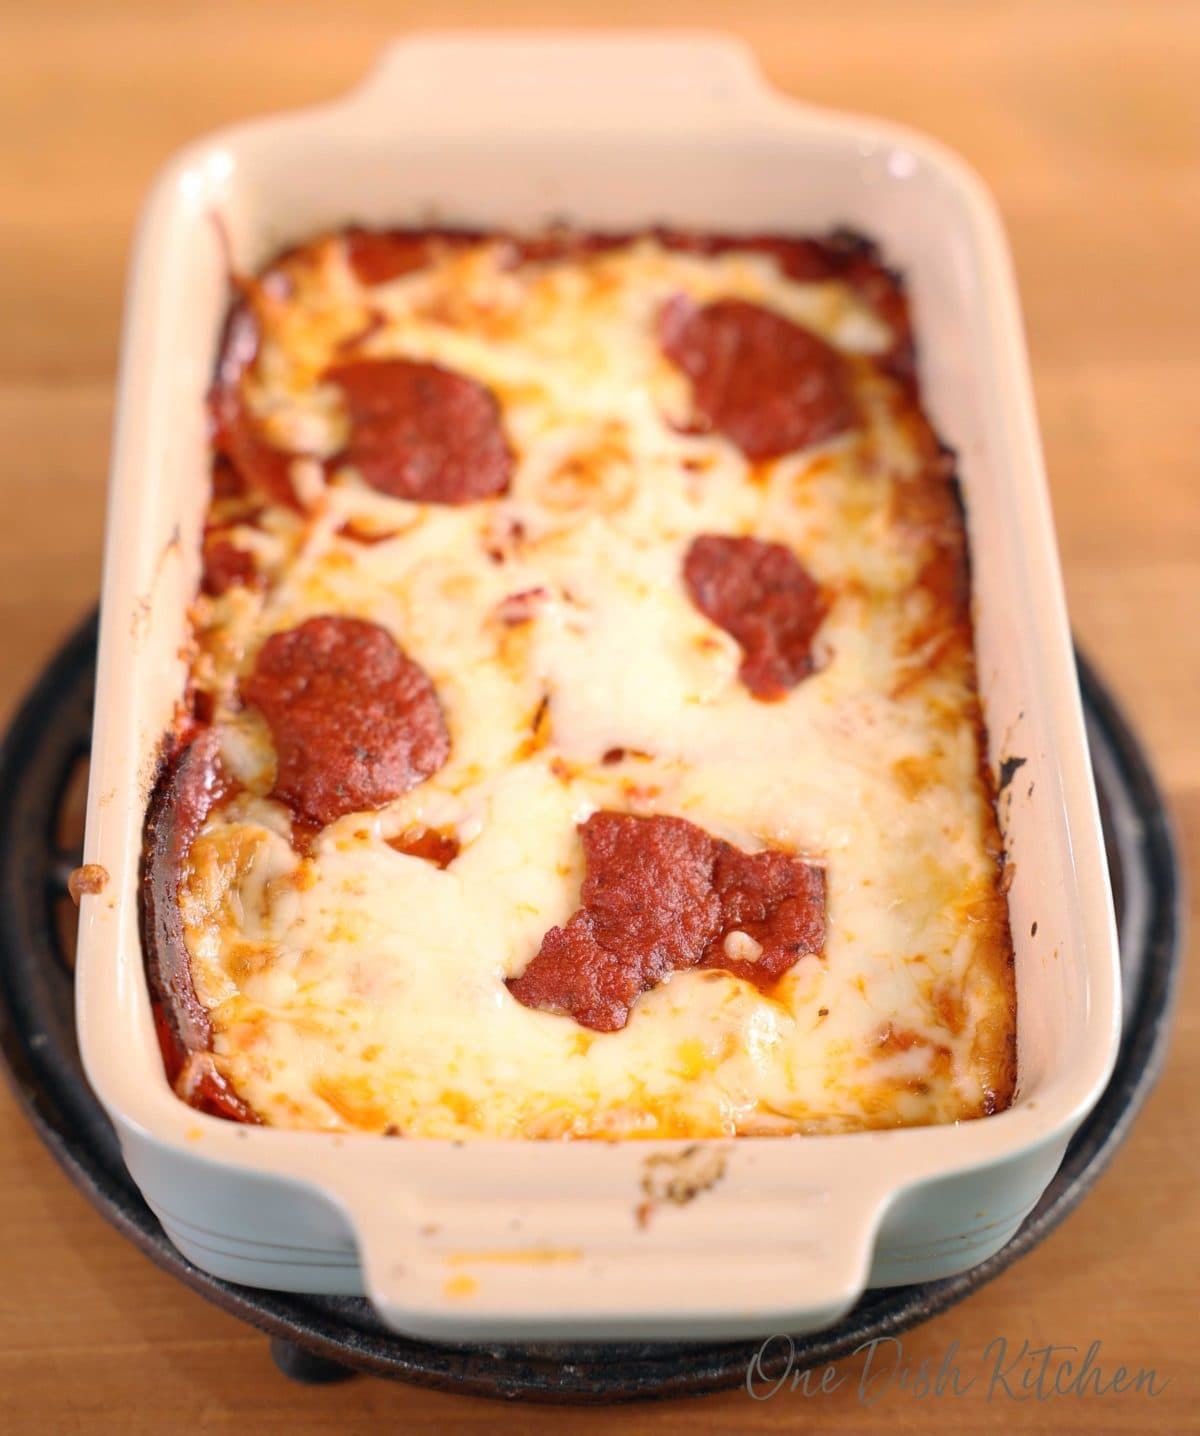 a small detroit style pizza in a blue rectangular baking dish